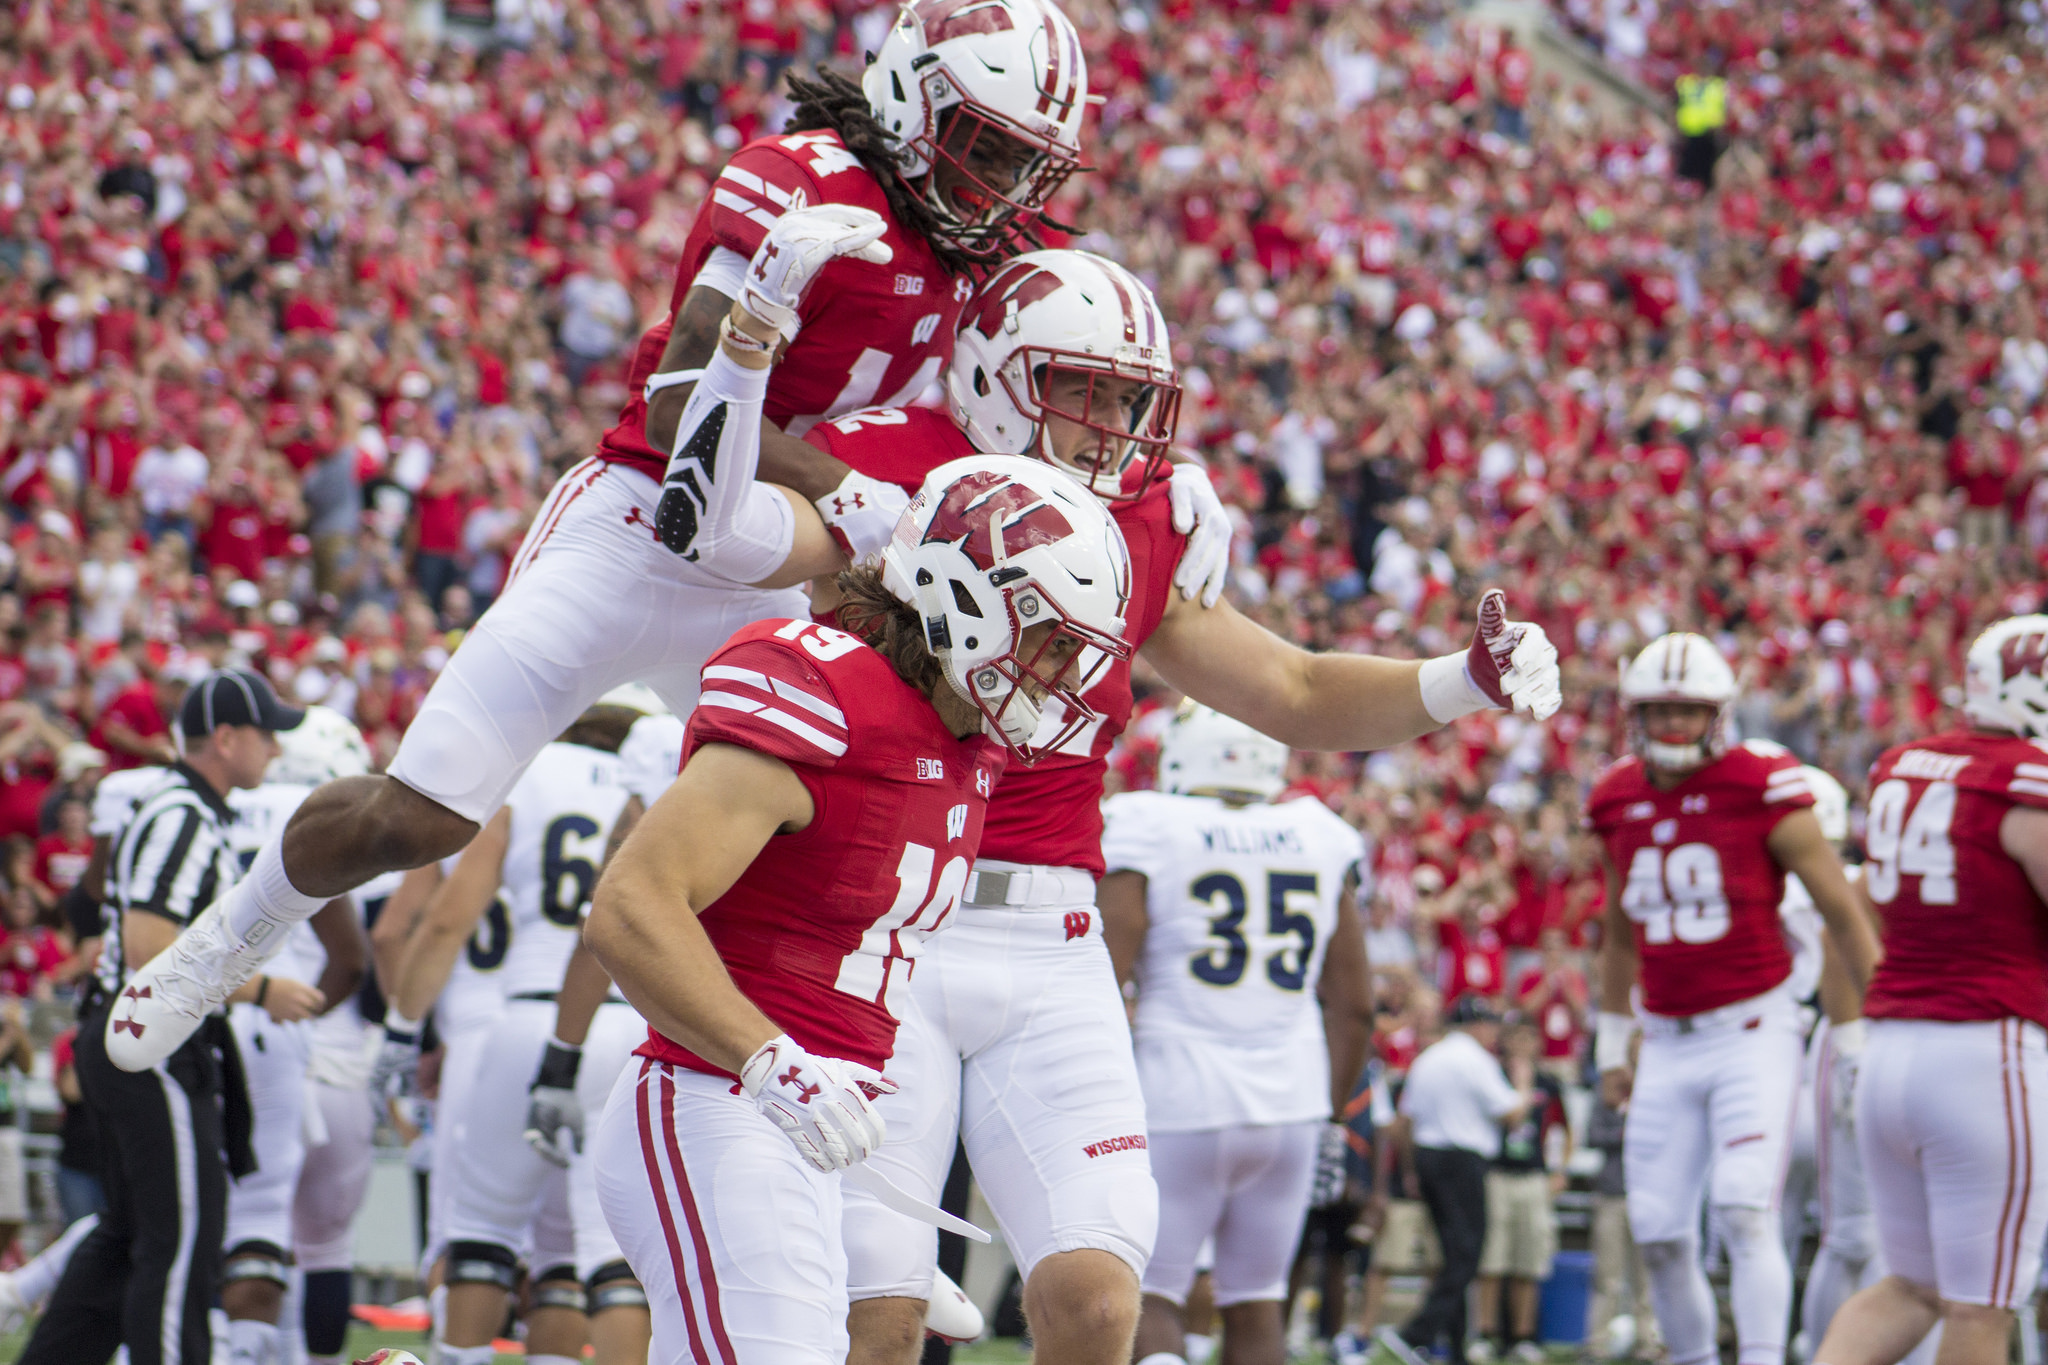 Wisconsin RB Clement exits with leg injury